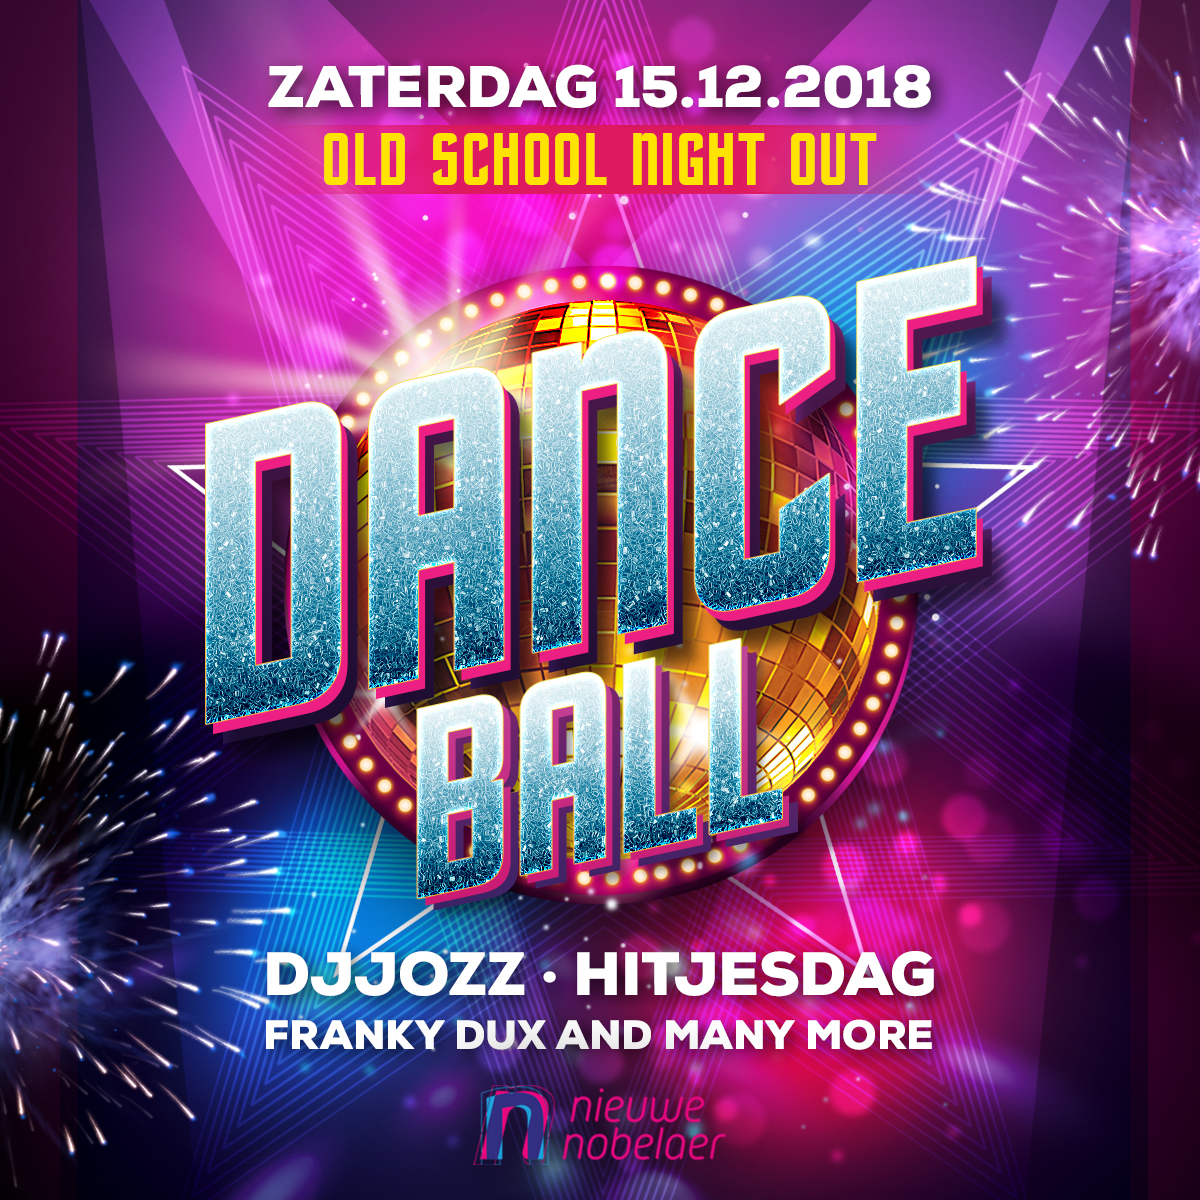 Dance_Ball_Vierkant